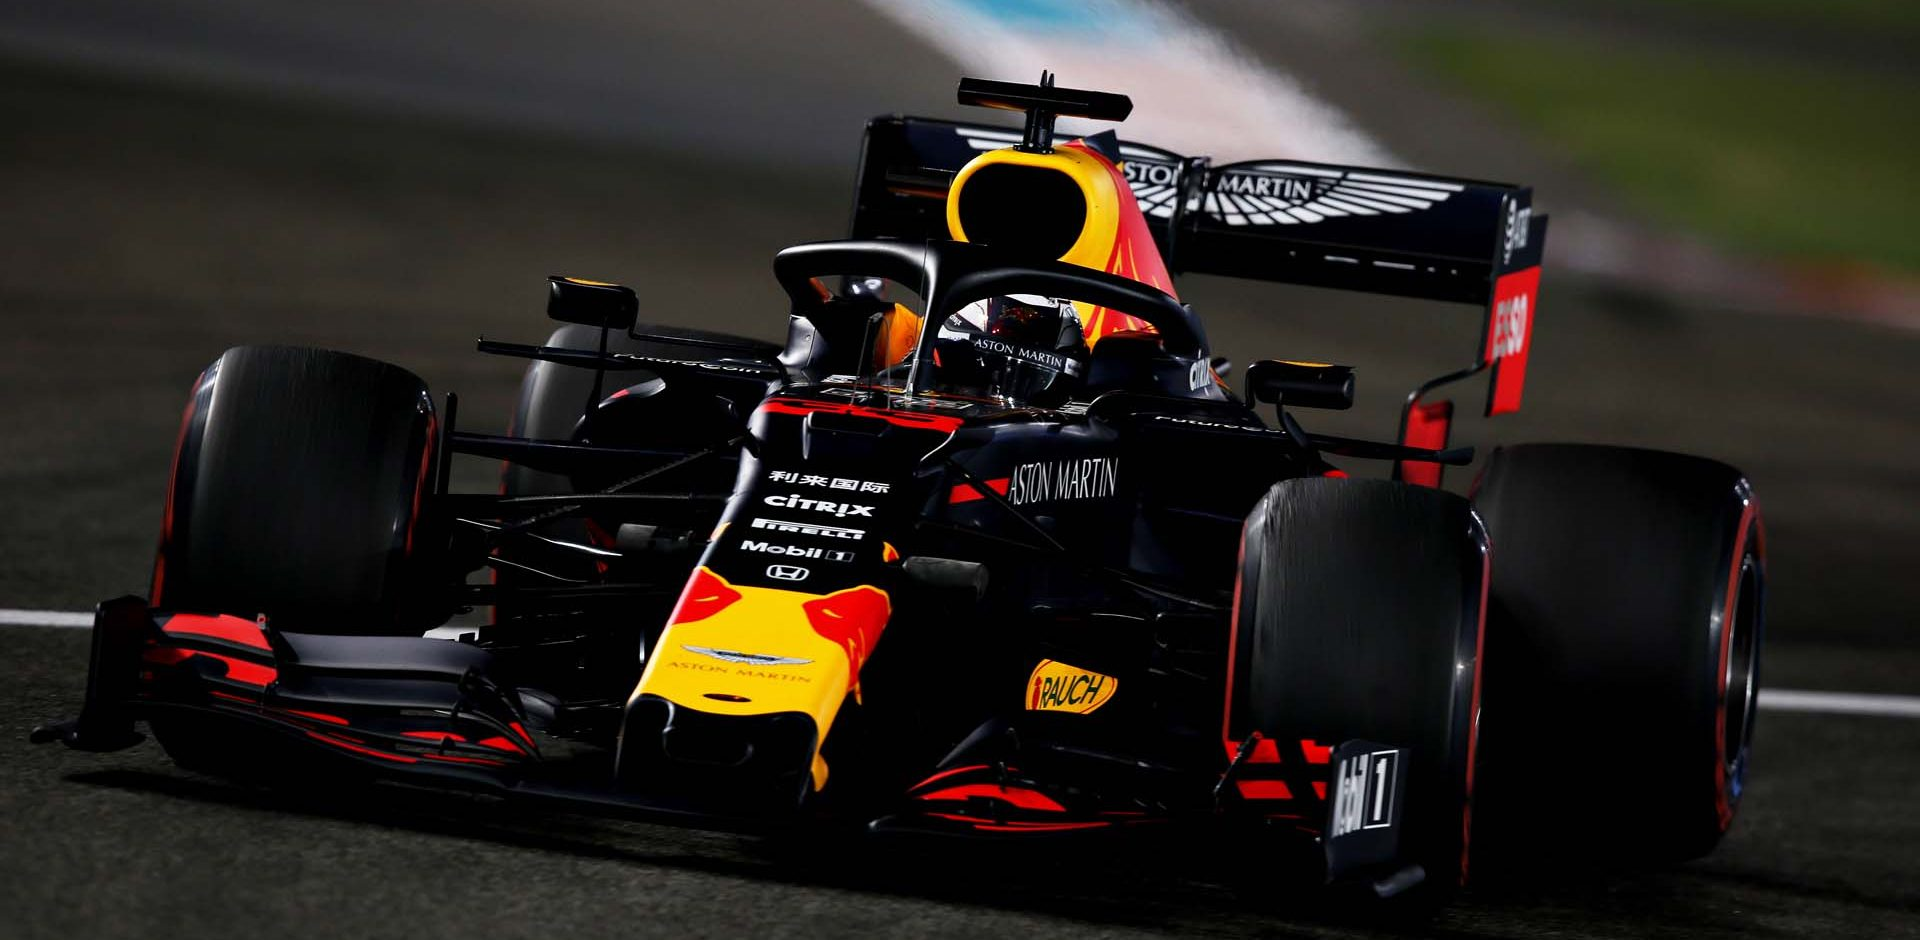 ABU DHABI, UNITED ARAB EMIRATES - NOVEMBER 29: Max Verstappen of the Netherlands driving the (33) Aston Martin Red Bull Racing RB15 on track during practice for the F1 Grand Prix of Abu Dhabi at Yas Marina Circuit on November 29, 2019 in Abu Dhabi, United Arab Emirates. (Photo by Charles Coates/Getty Images) // Getty Images / Red Bull Content Pool  // AP-22B74WP952111 // Usage for editorial use only //